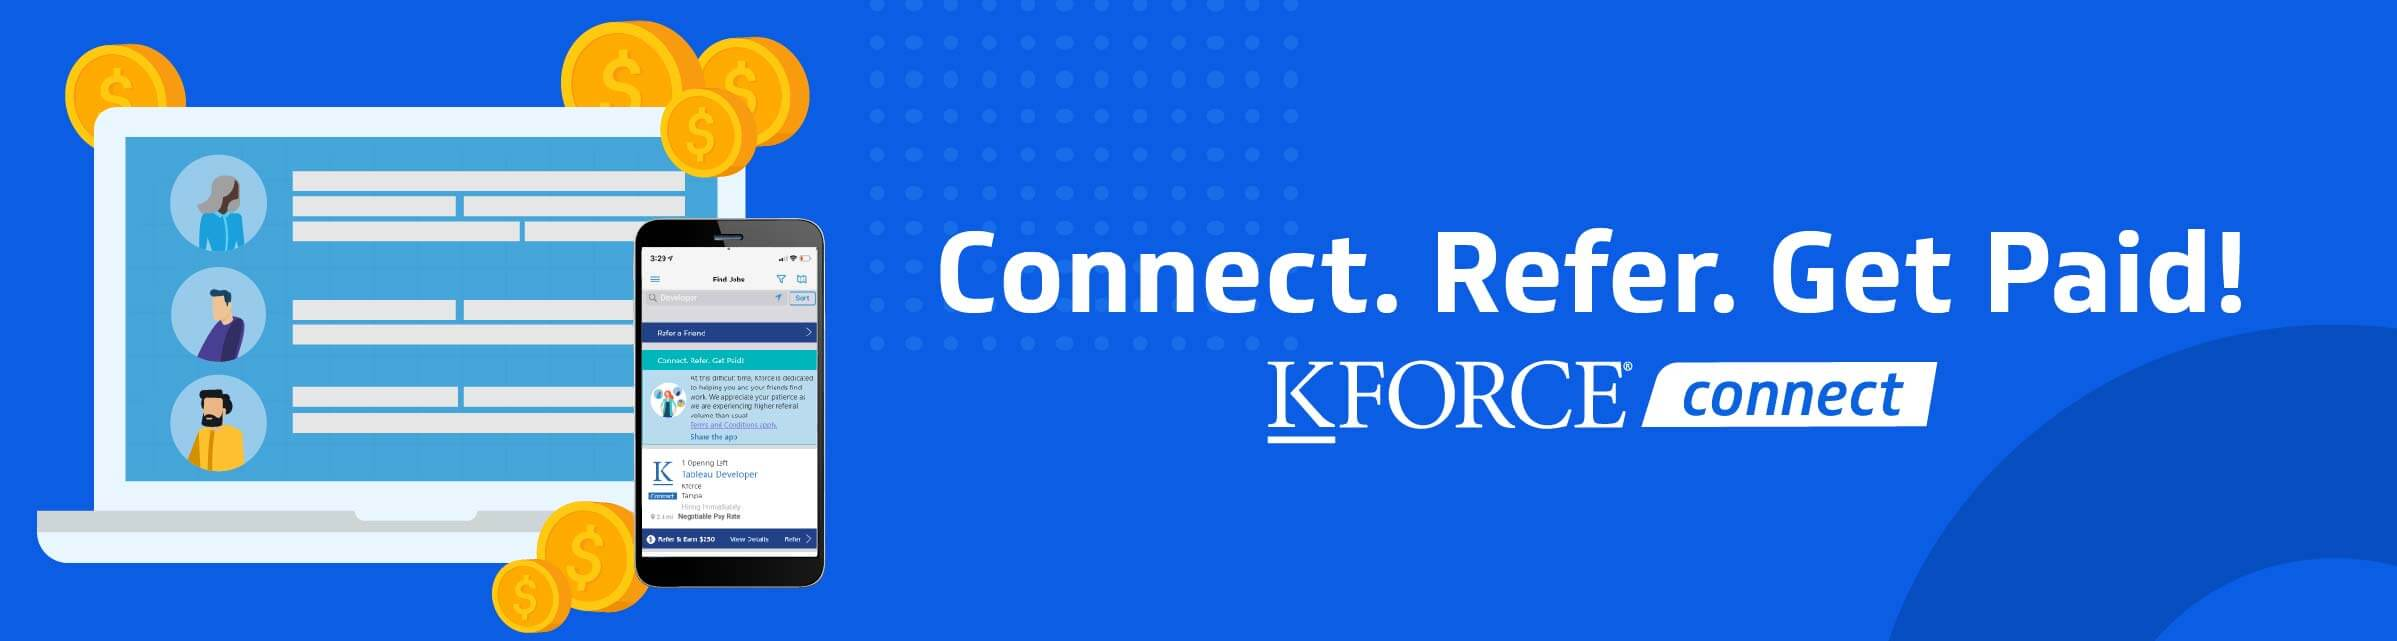 Connect. Refer. Get Paid.